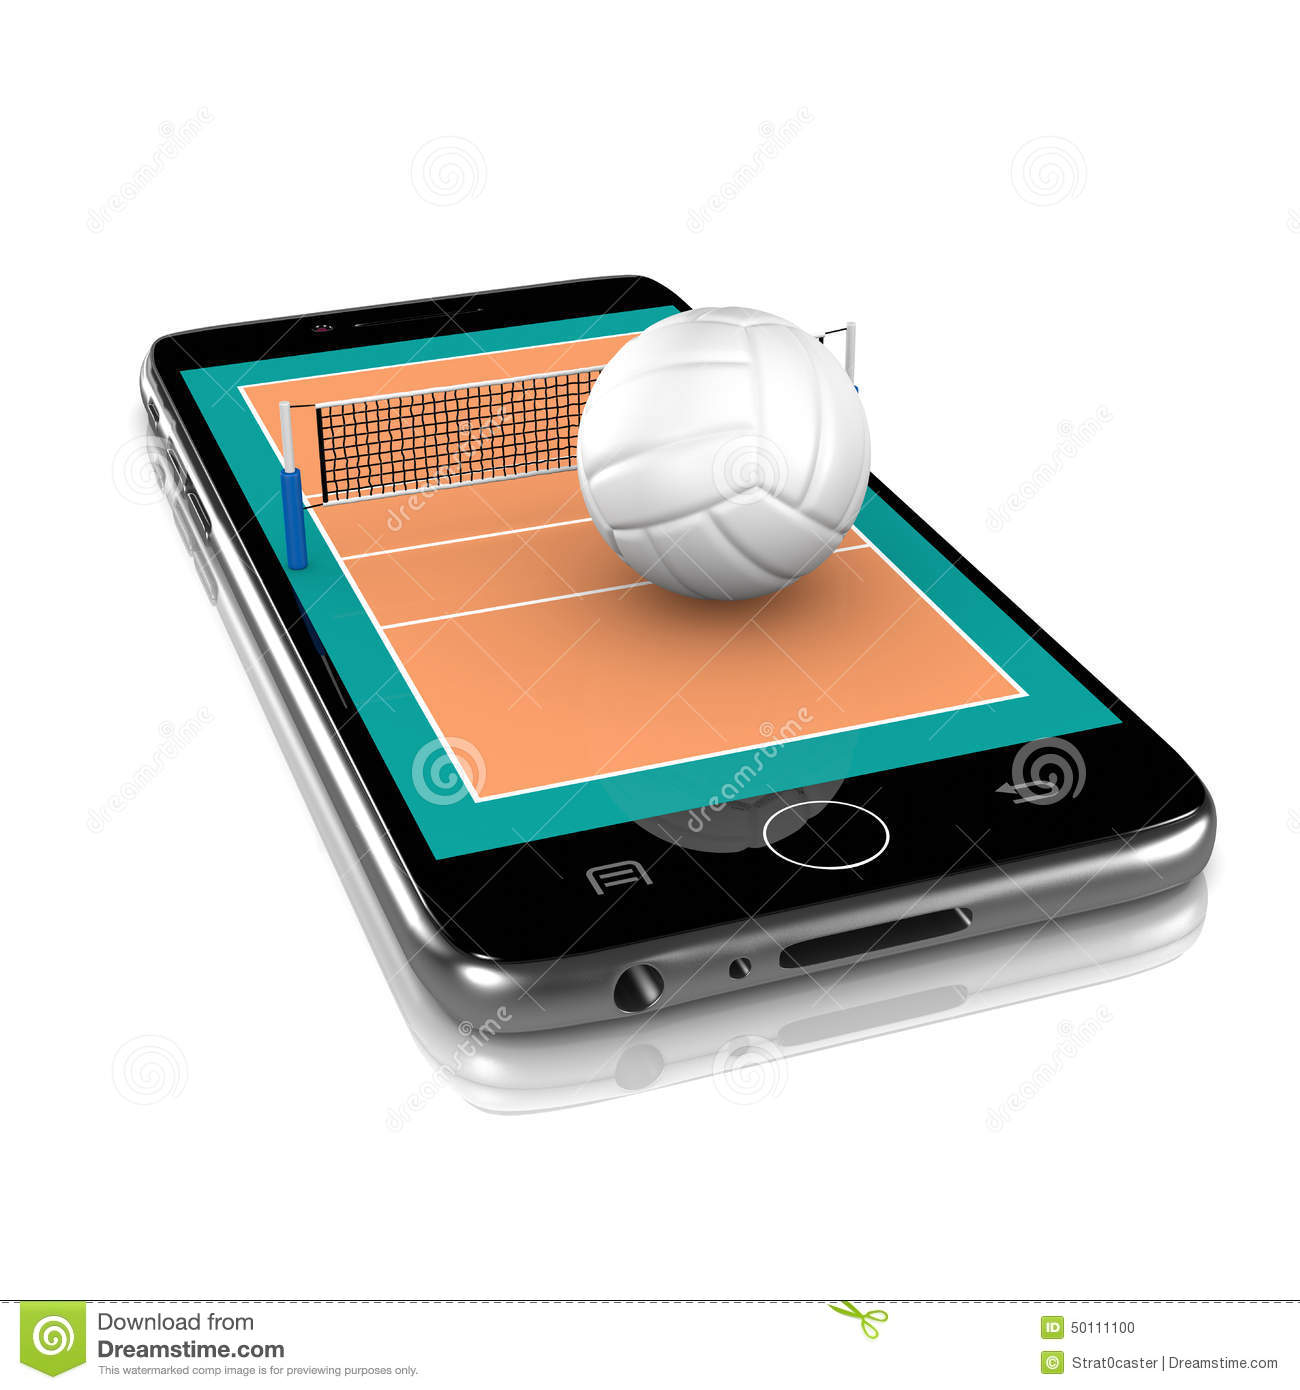 Volleyball on Smartphone, Sports App